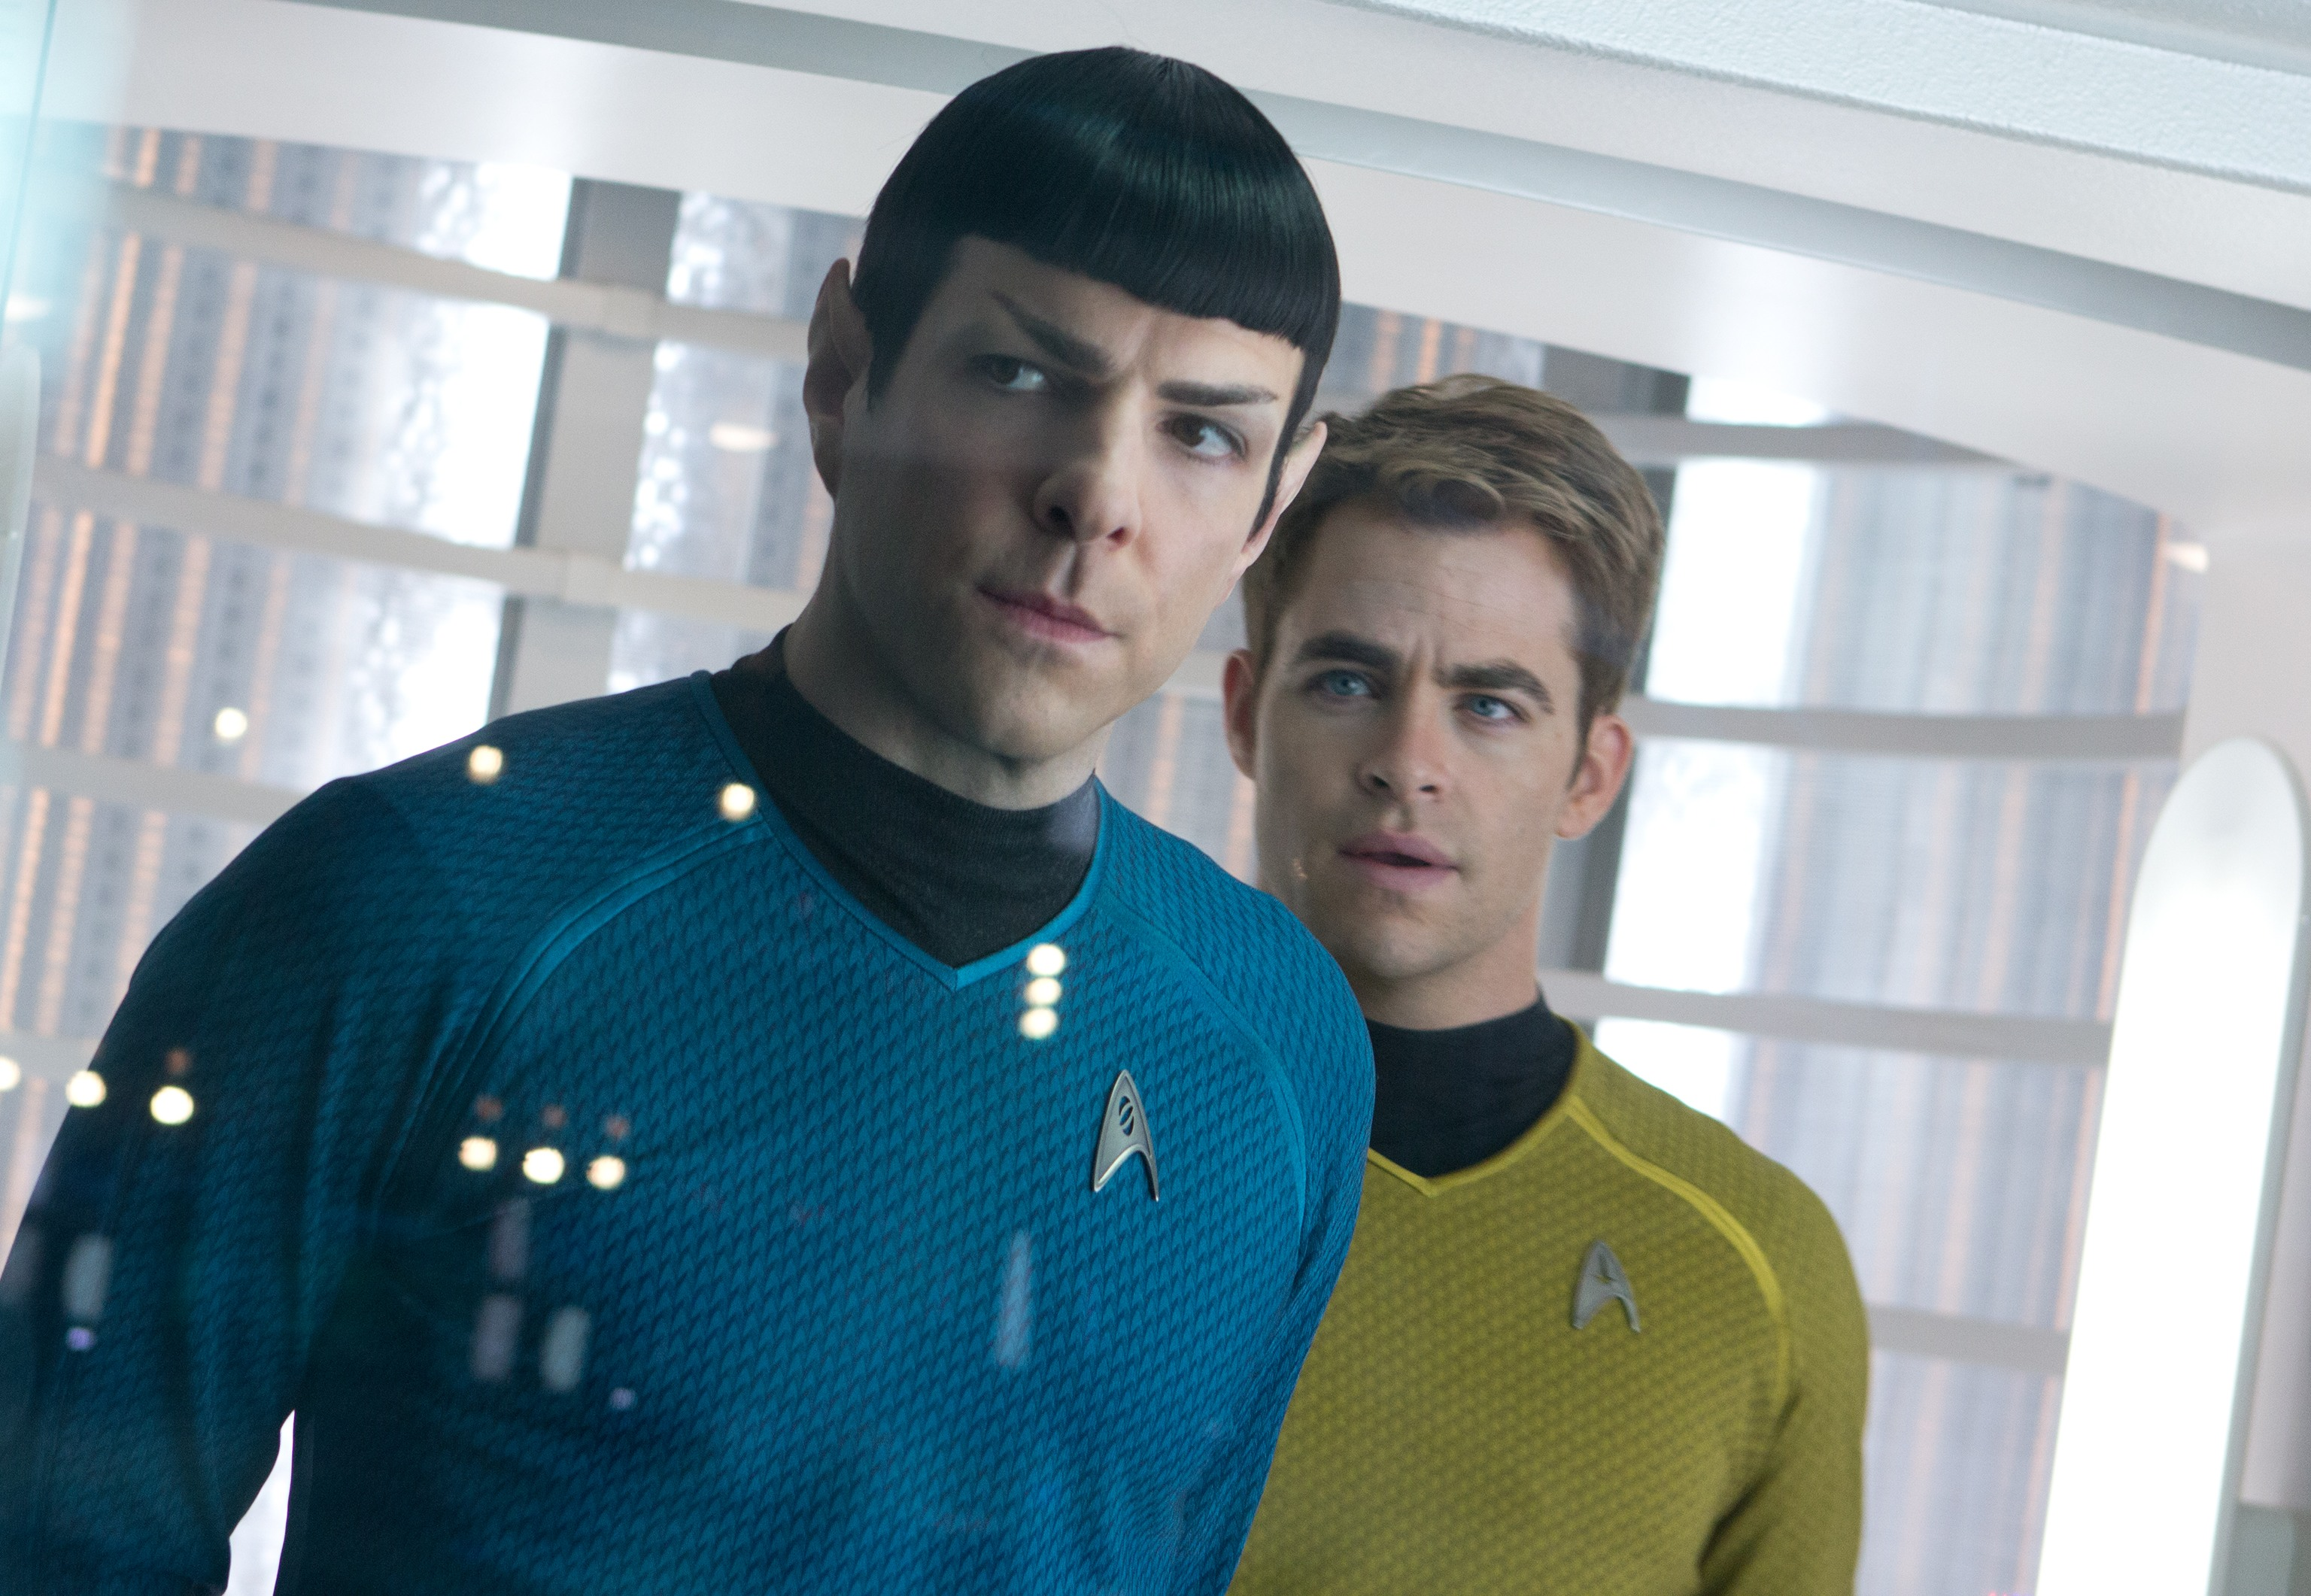 Zachary Quinto confirma filmagem do novo Star Trek para breve